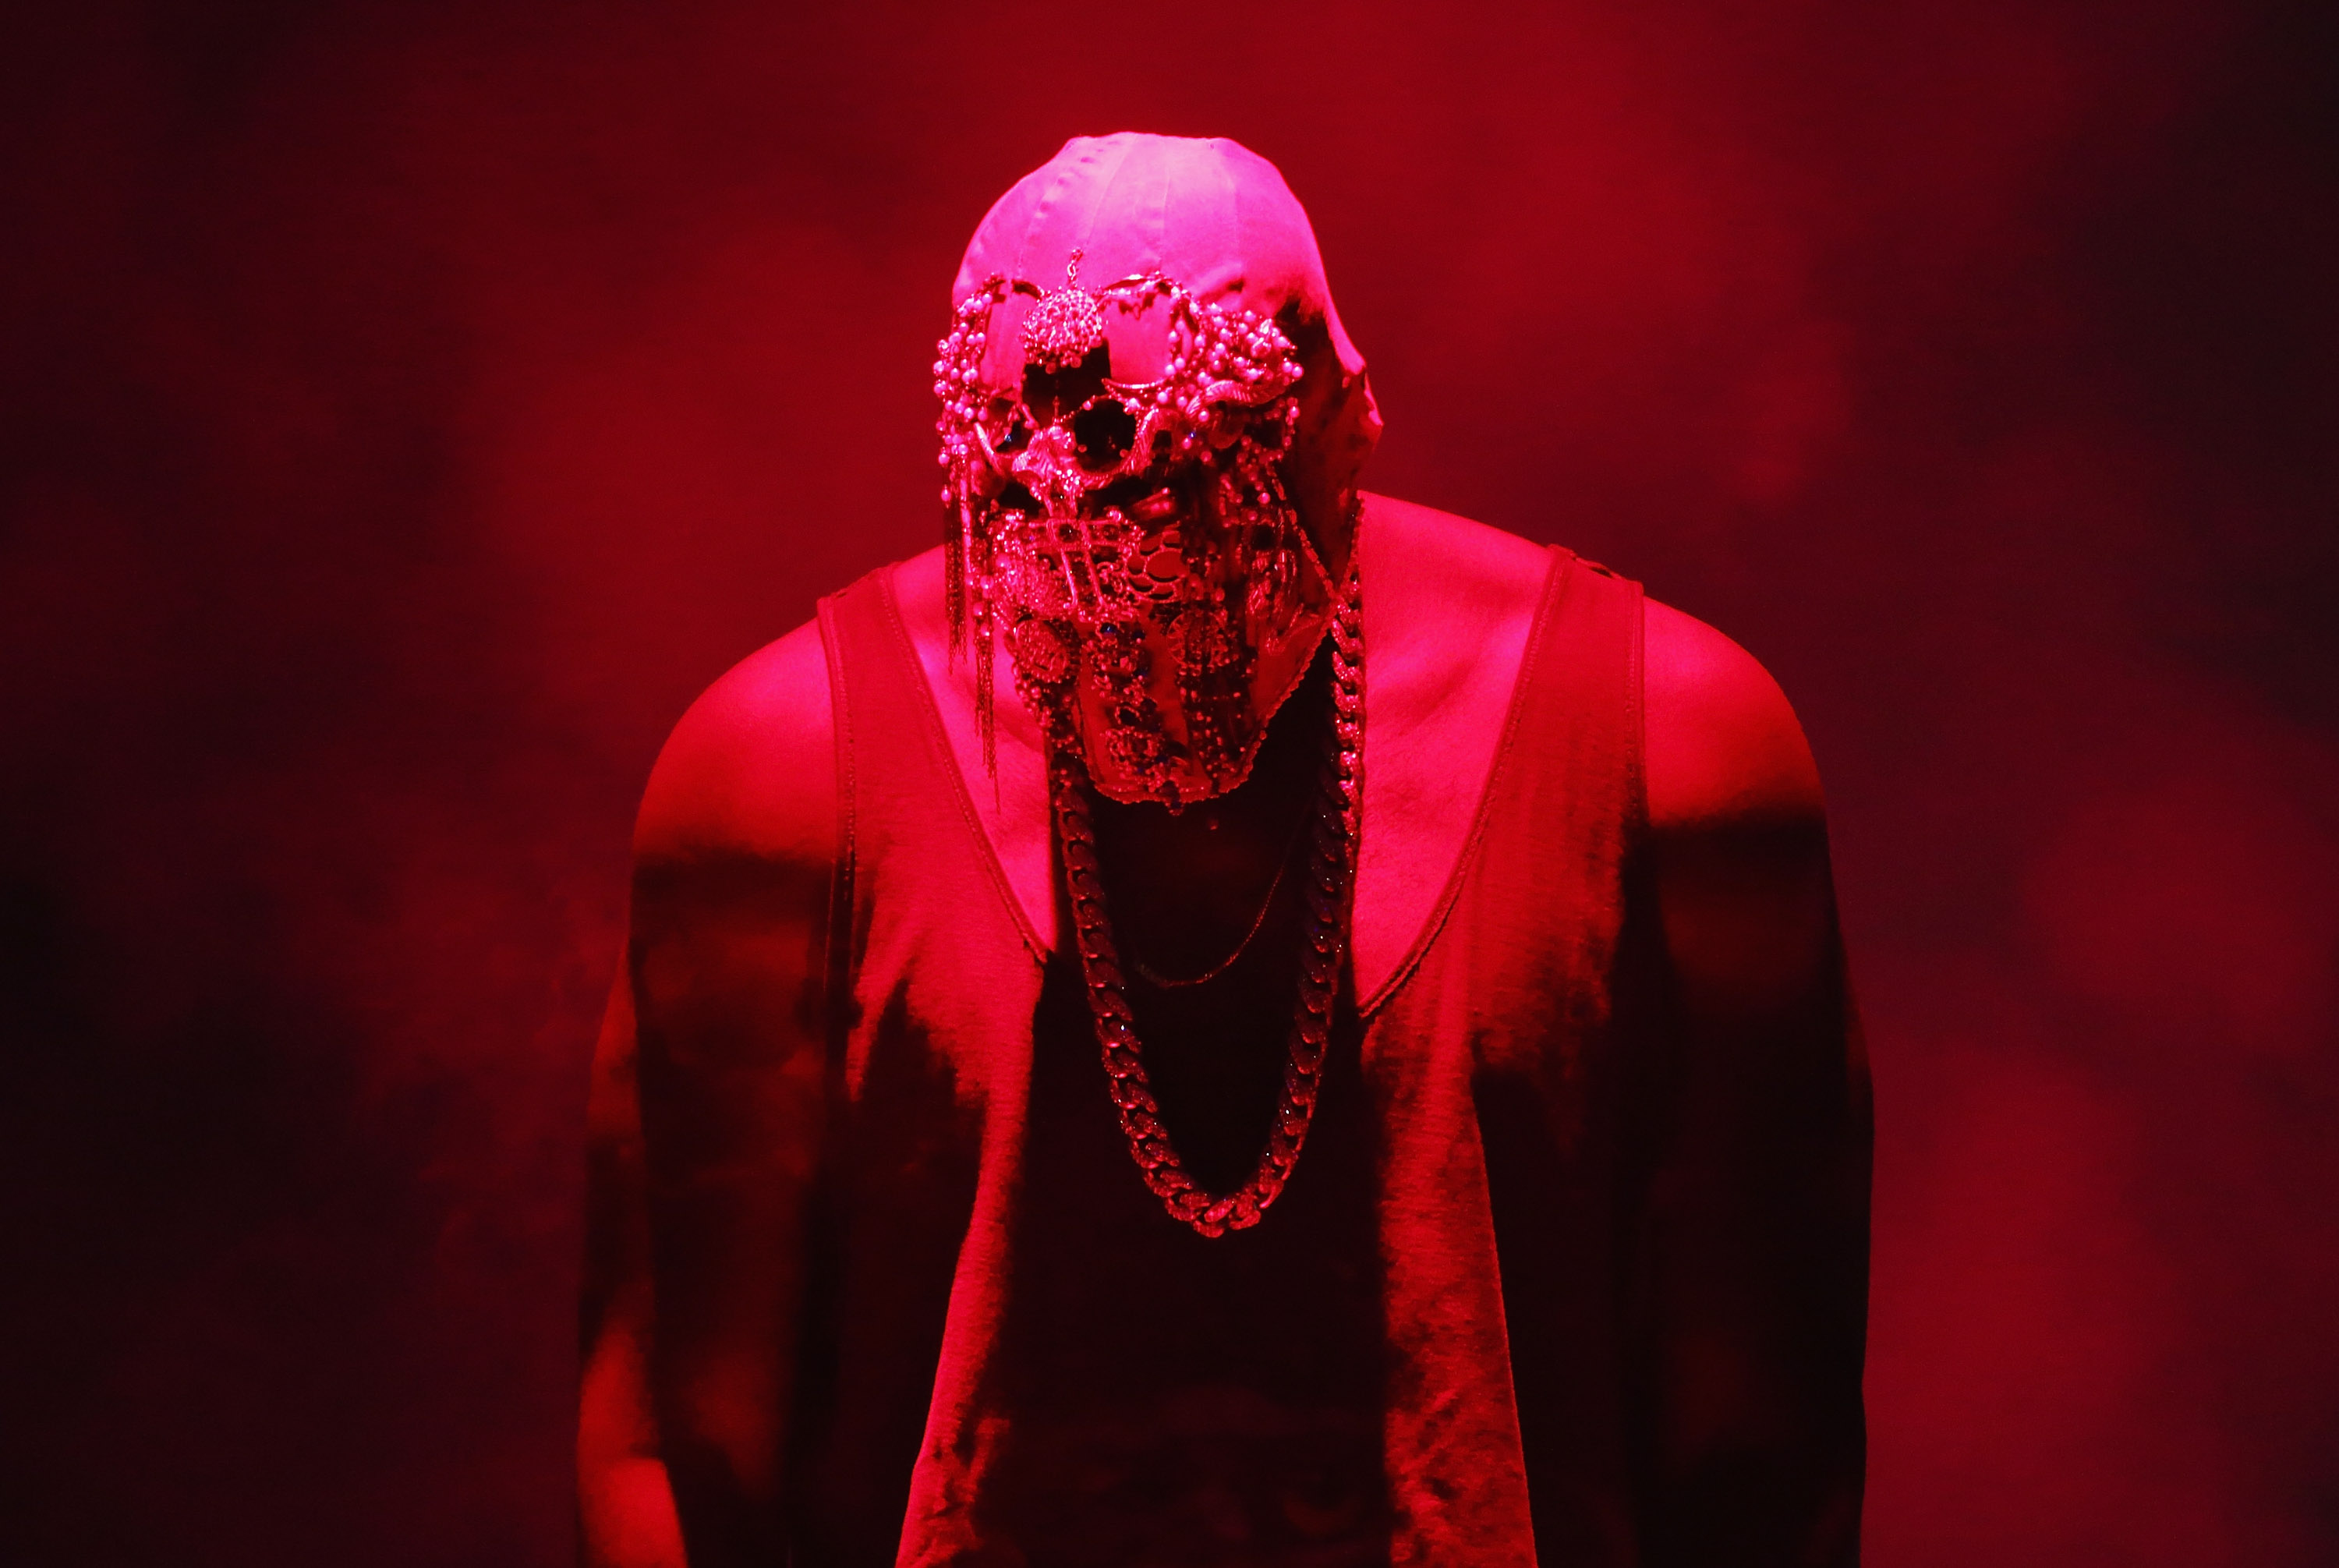 SYDNEY, AUSTRALIA - SEPTEMBER 12:  Kanye West performs live for fans at Qantas Credit Union Arena on September 12, 2014 in Sy